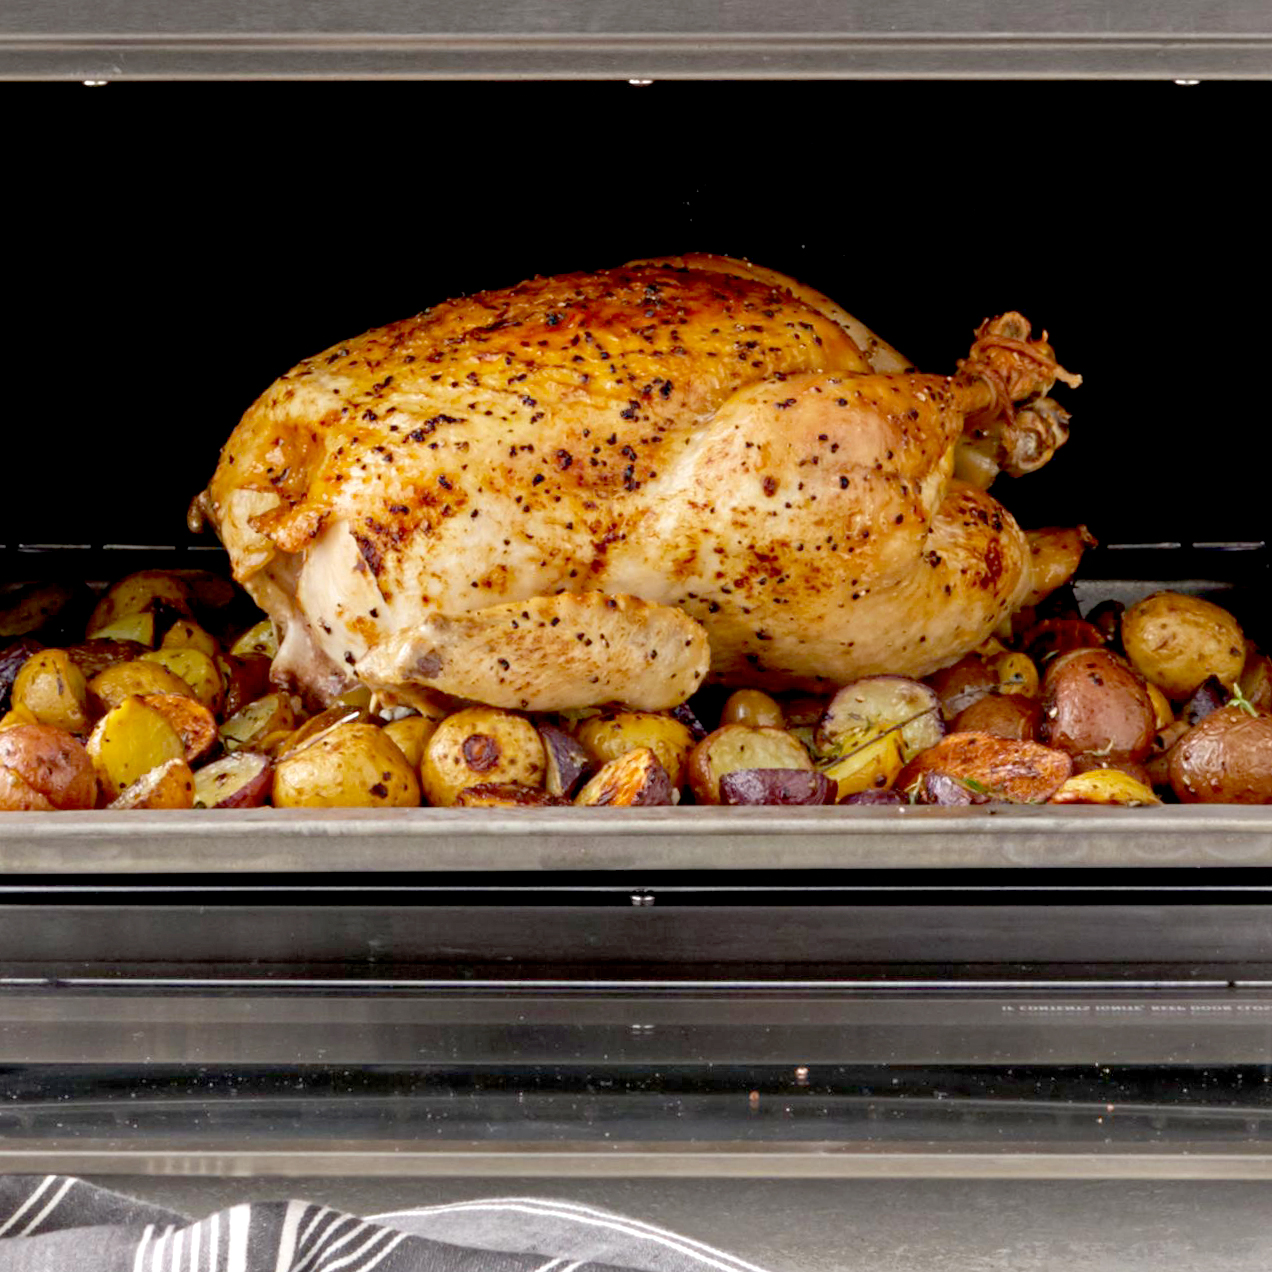 roast chicken and potatoes in toaster oven